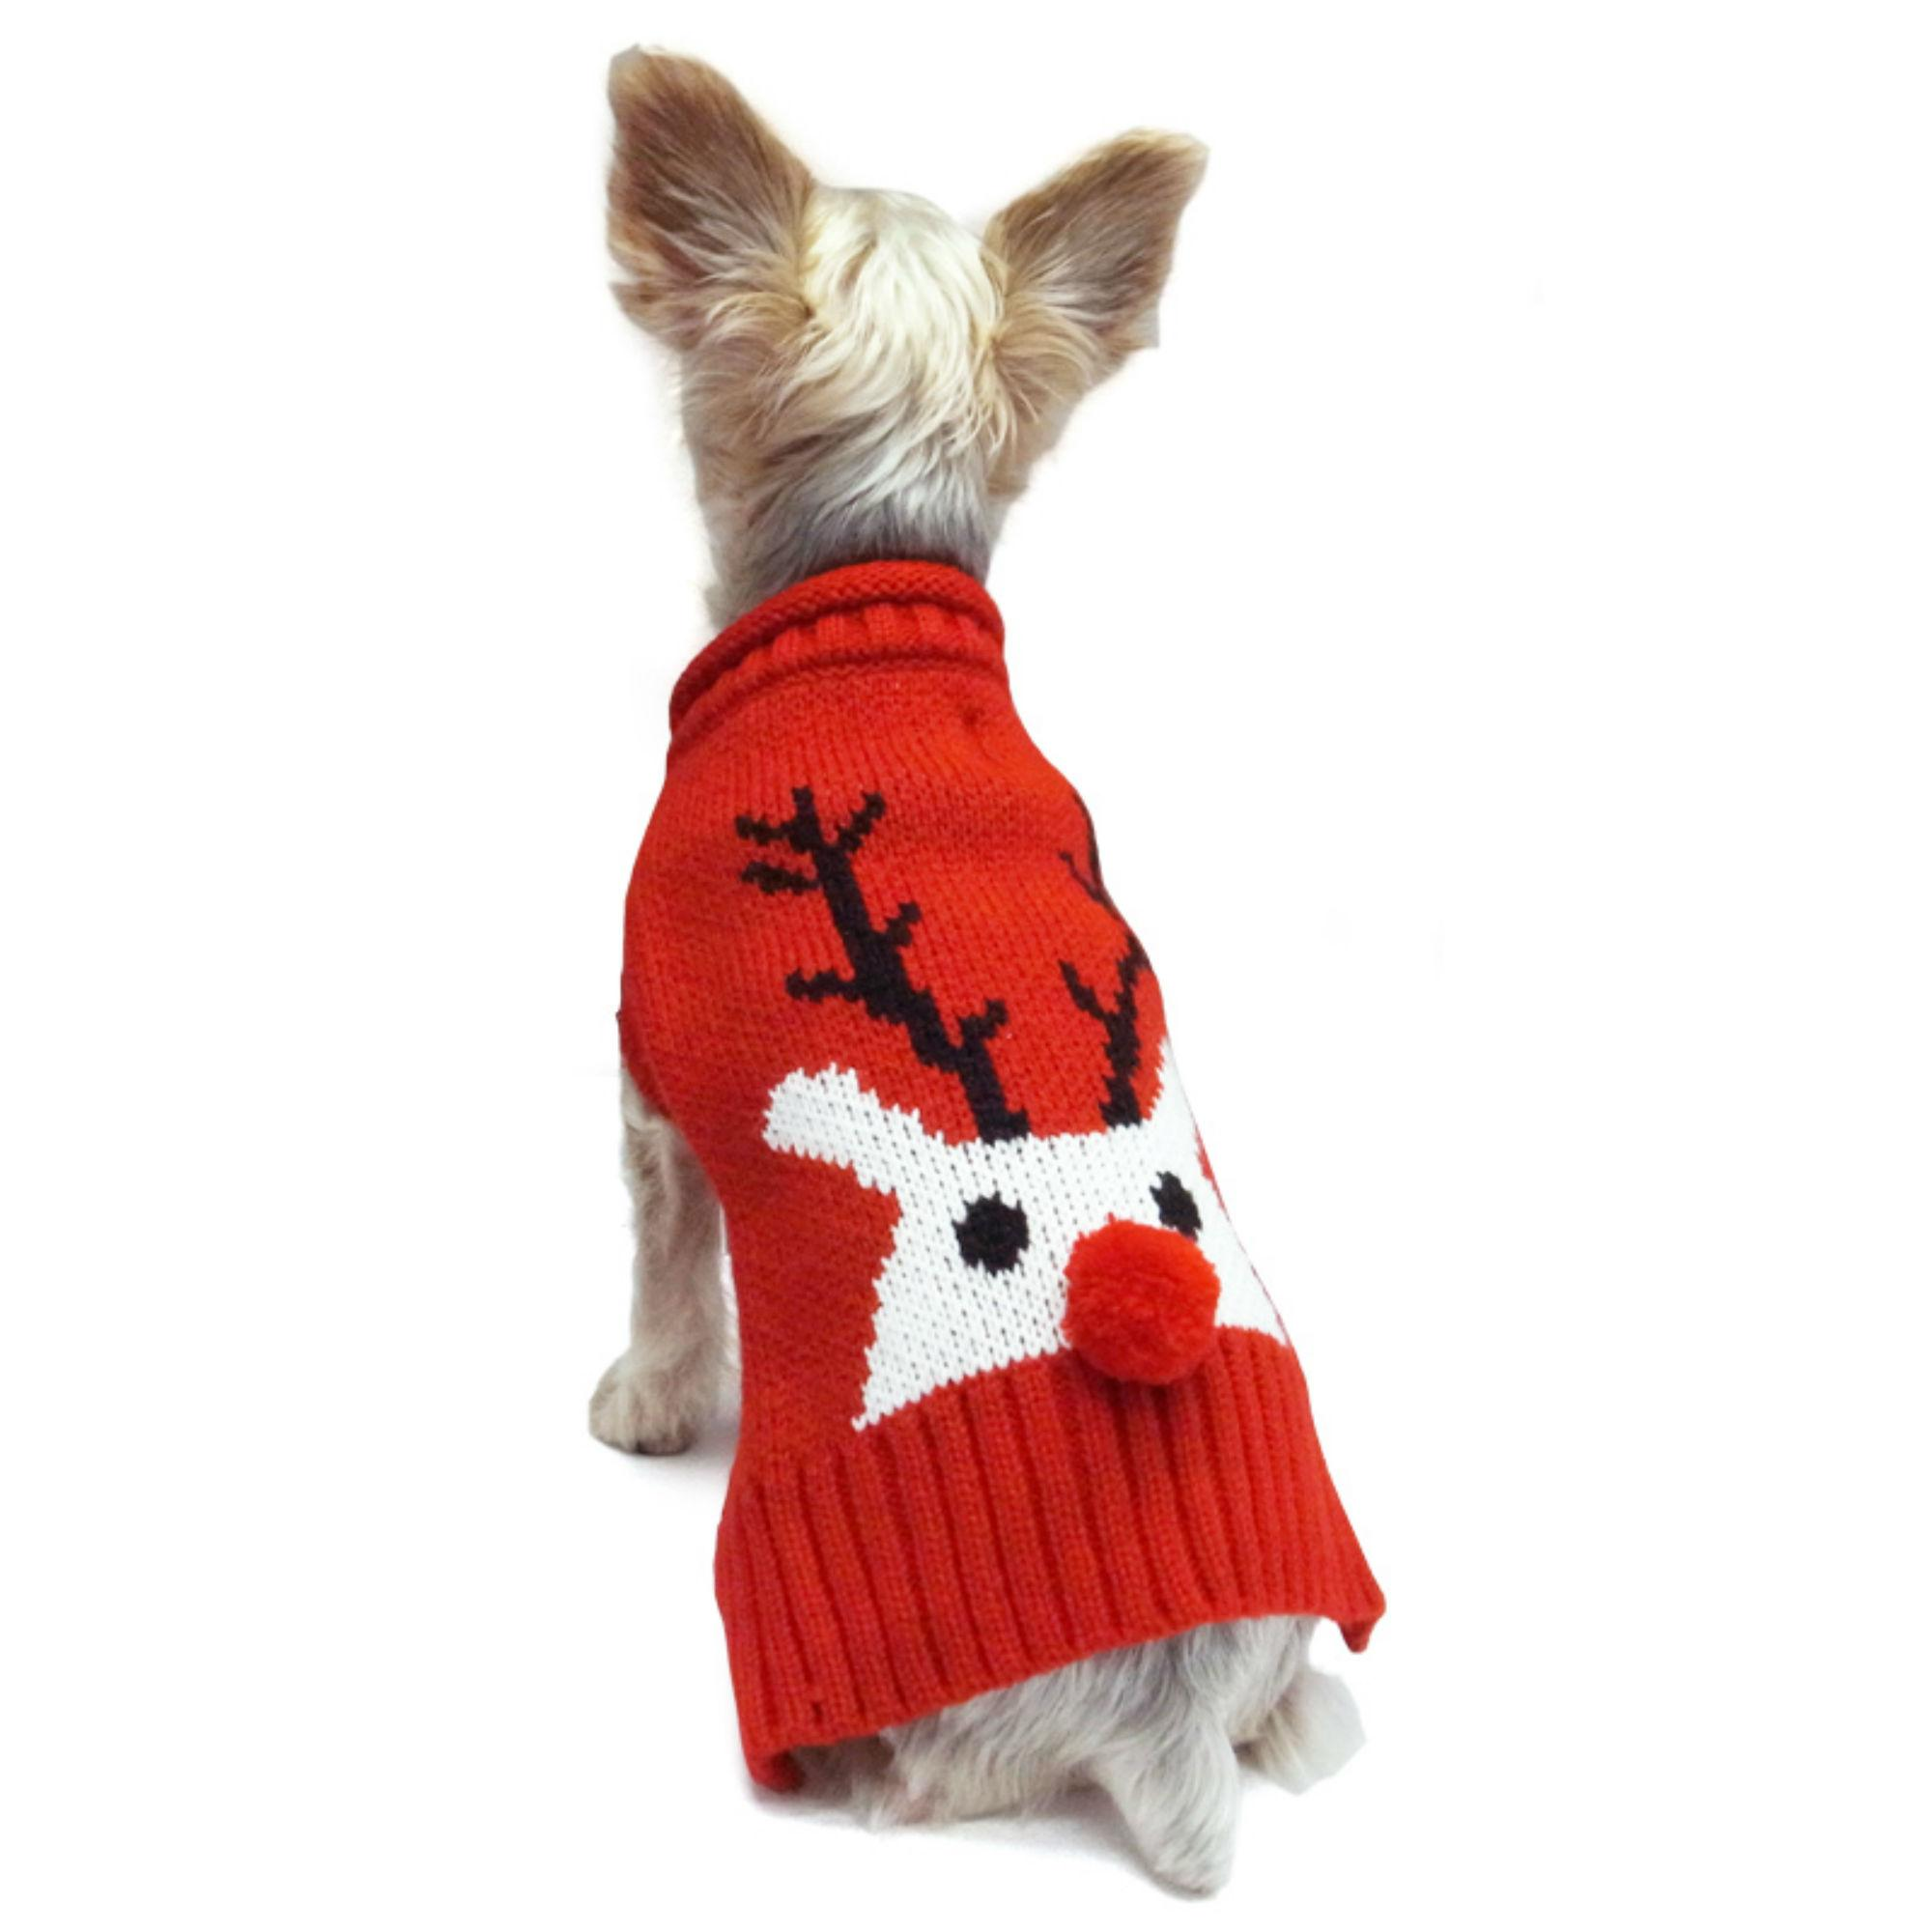 Red Nose Reindeer Dog Sweater by Dogo - Red